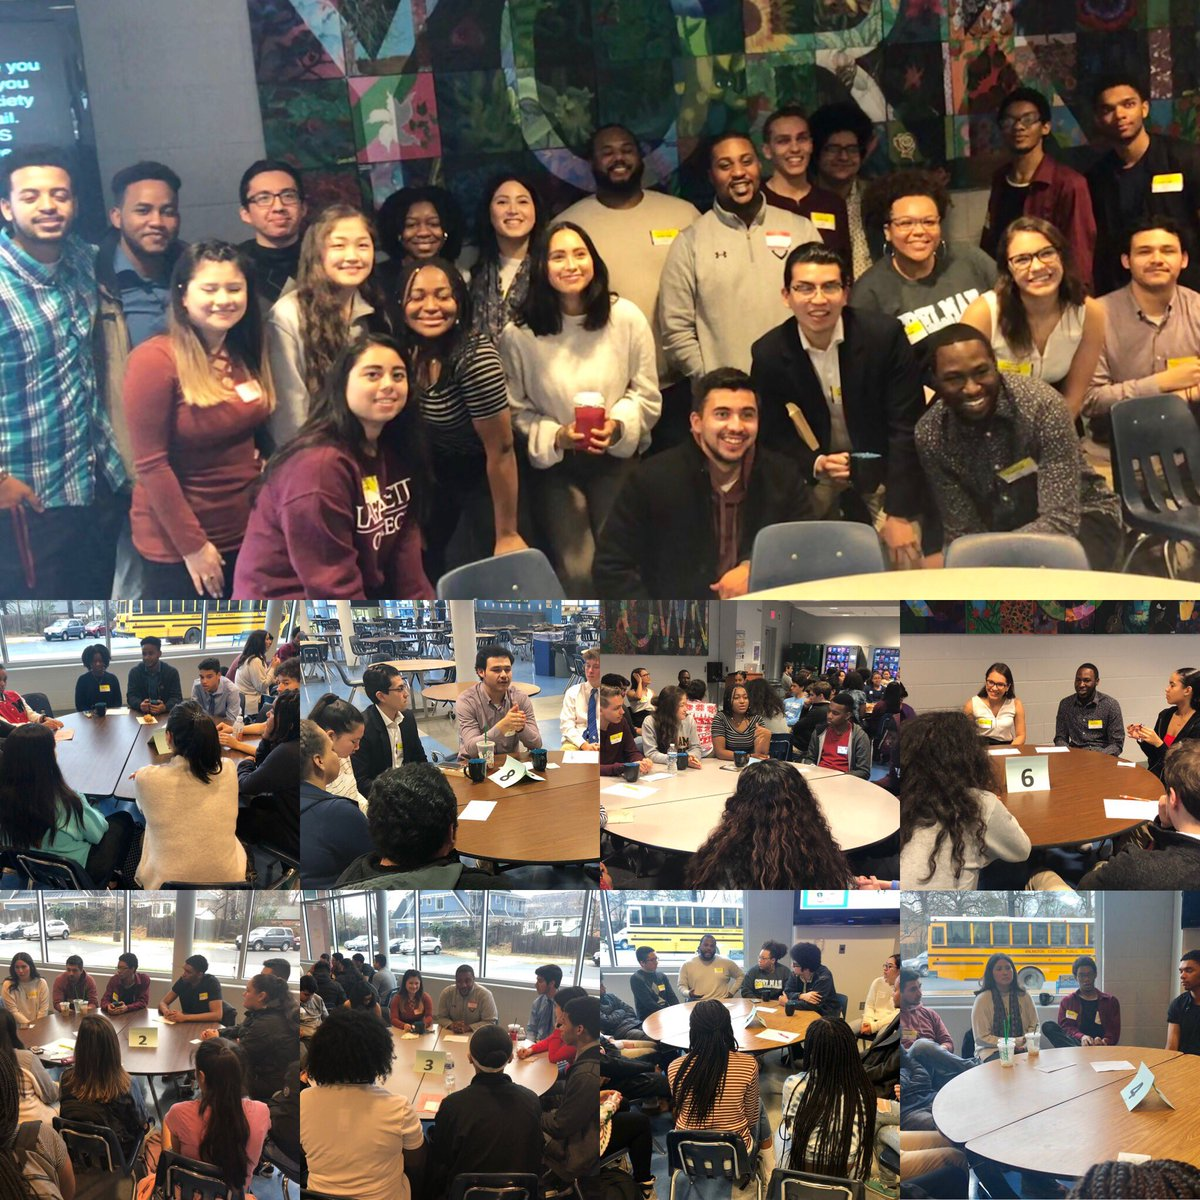 Thank you to the alumni who shared their experiences about life beyond YHS! <a target='_blank' href='http://twitter.com/Principal_YHS'>@Principal_YHS</a> <a target='_blank' href='http://twitter.com/yhsenglish'>@yhsenglish</a> <a target='_blank' href='http://twitter.com/YorktownSentry'>@YorktownSentry</a> <a target='_blank' href='http://twitter.com/YorktownOEE'>@YorktownOEE</a> <a target='_blank' href='https://t.co/V2jdvz7Z3x'>https://t.co/V2jdvz7Z3x</a>